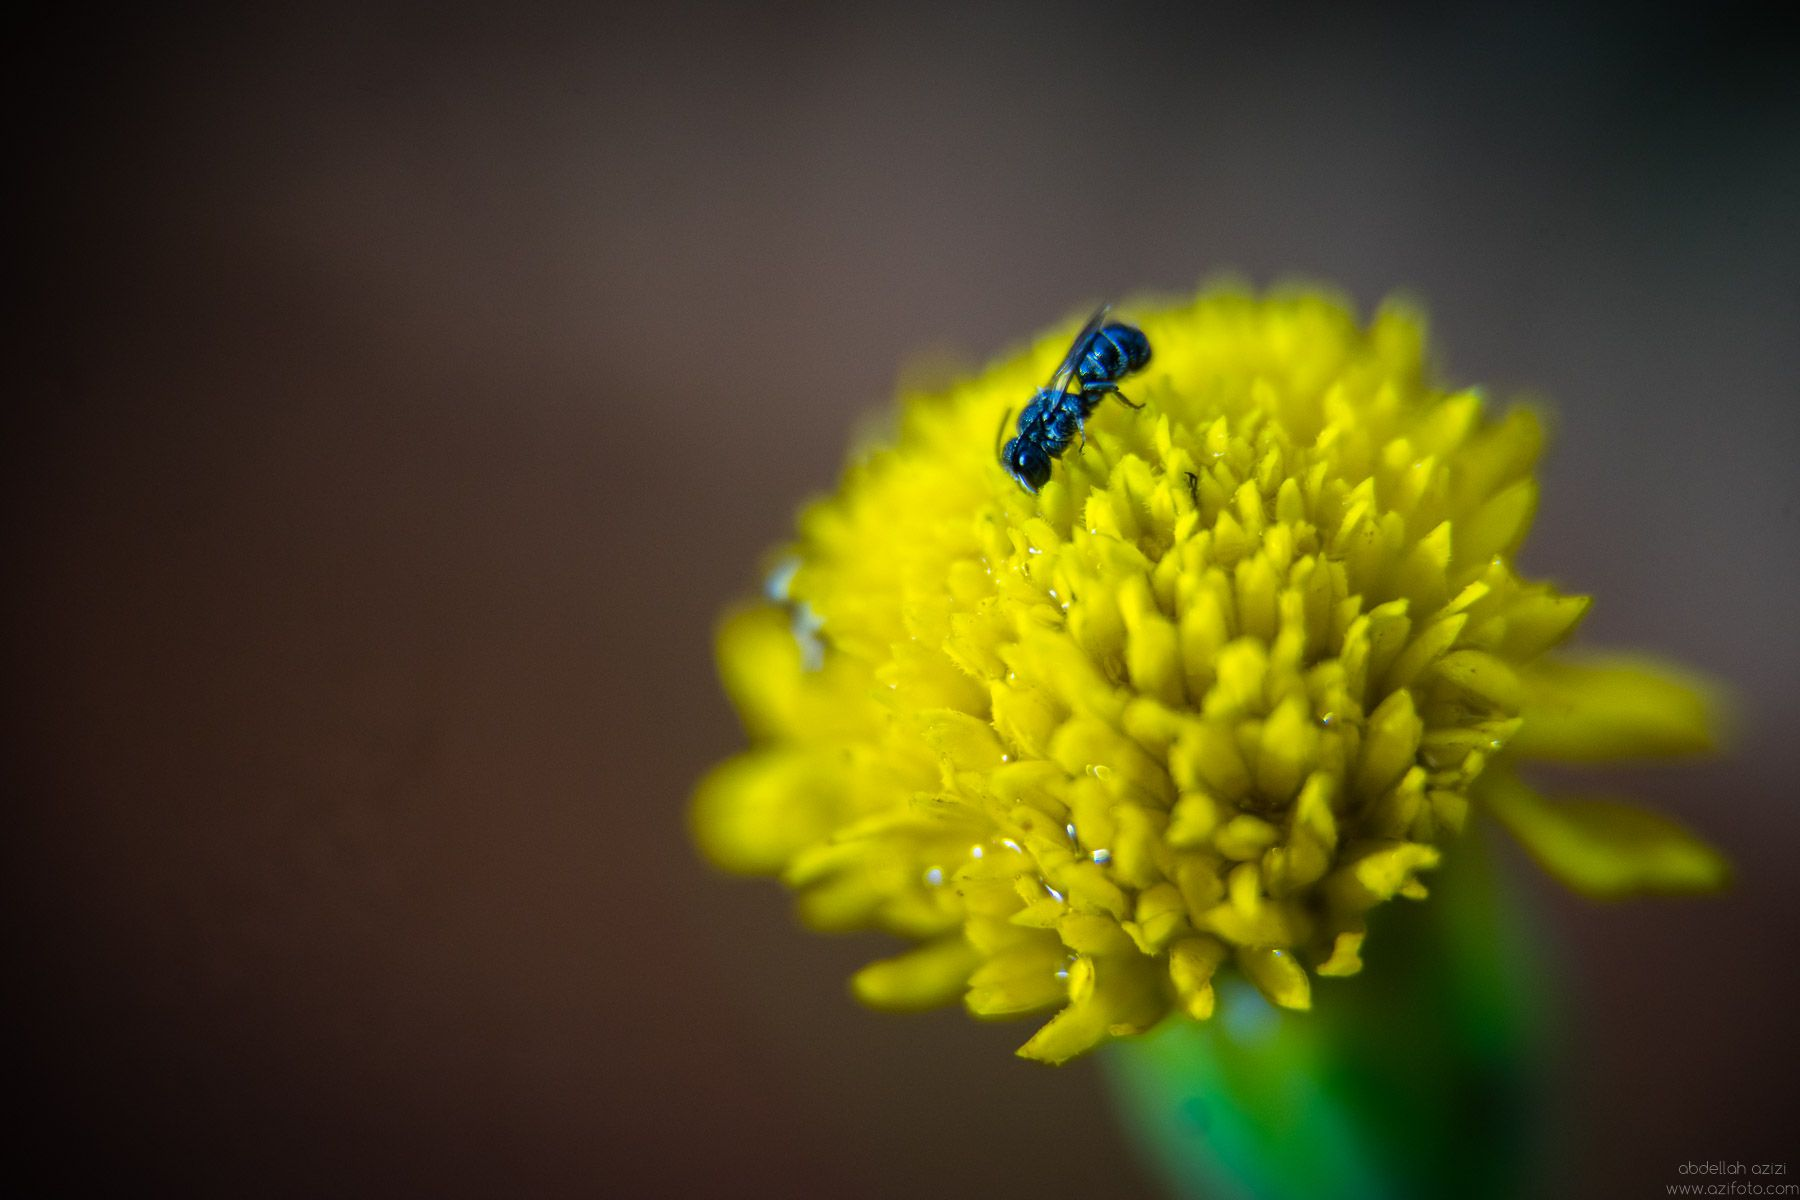 Clos up of an insect, abdellah azizi photography